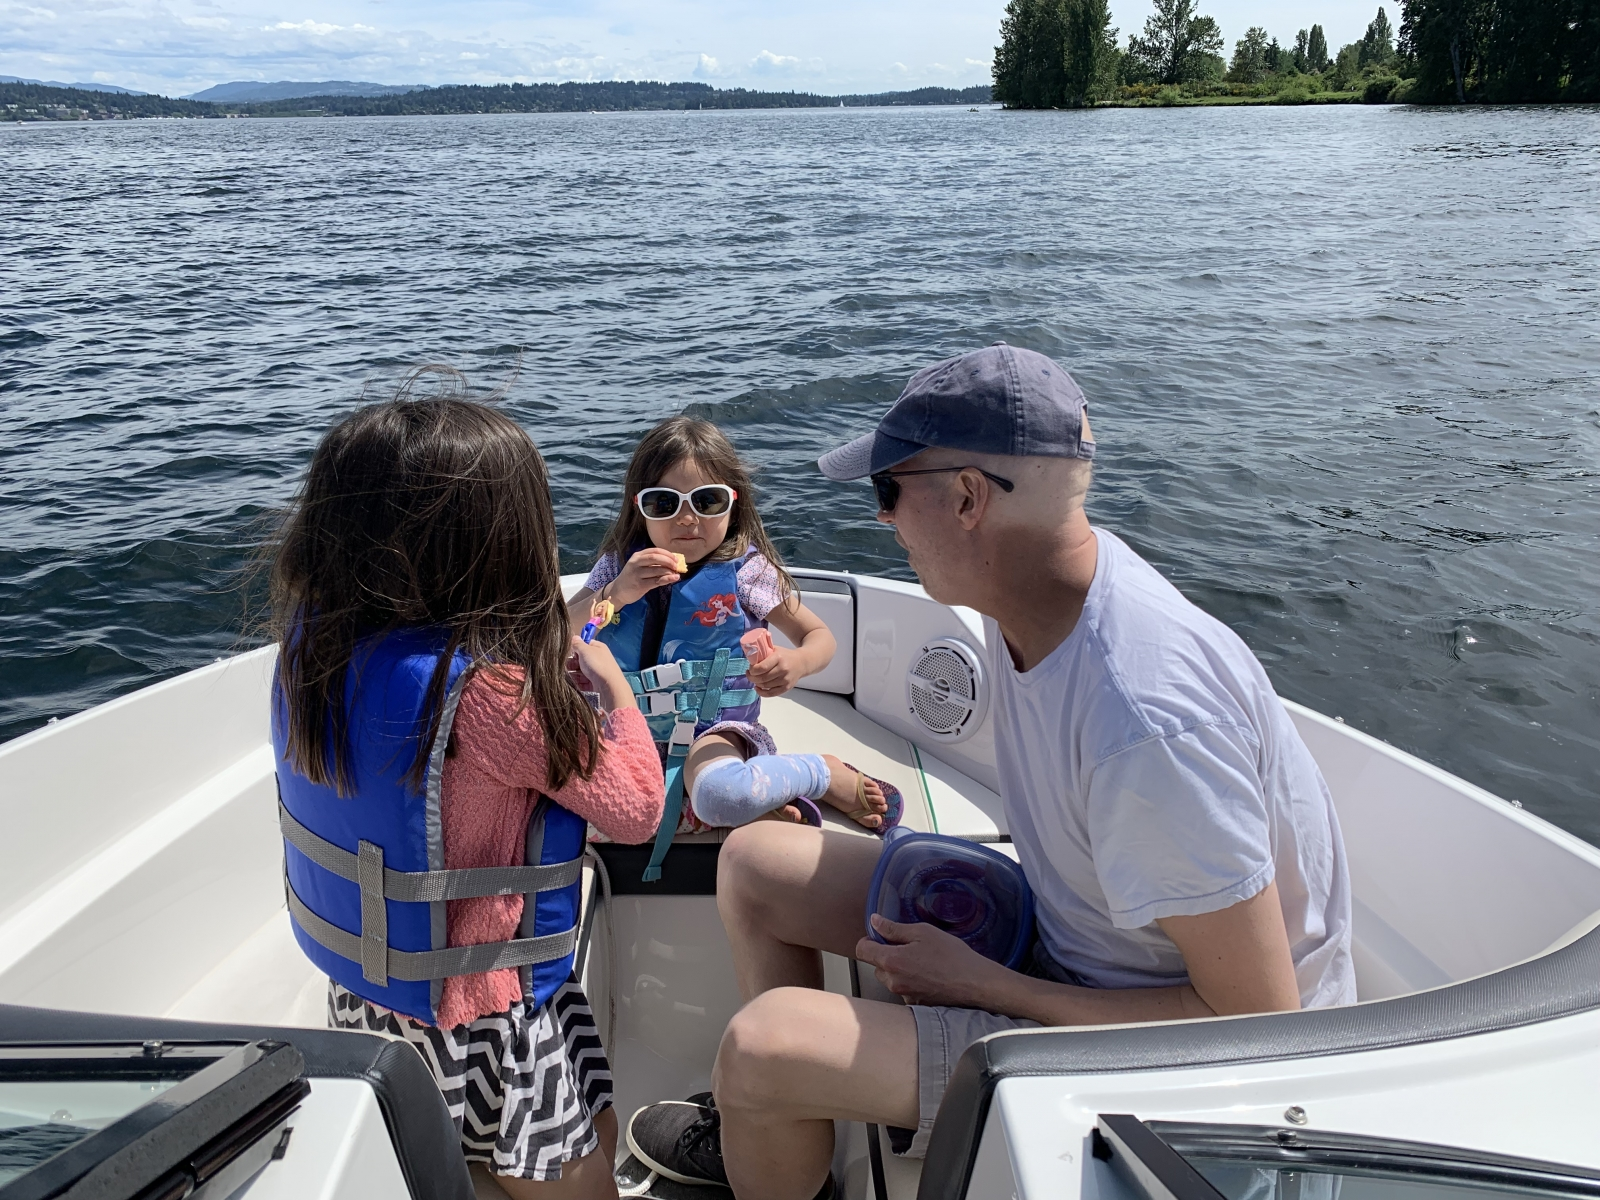 2019: On Lake Washington